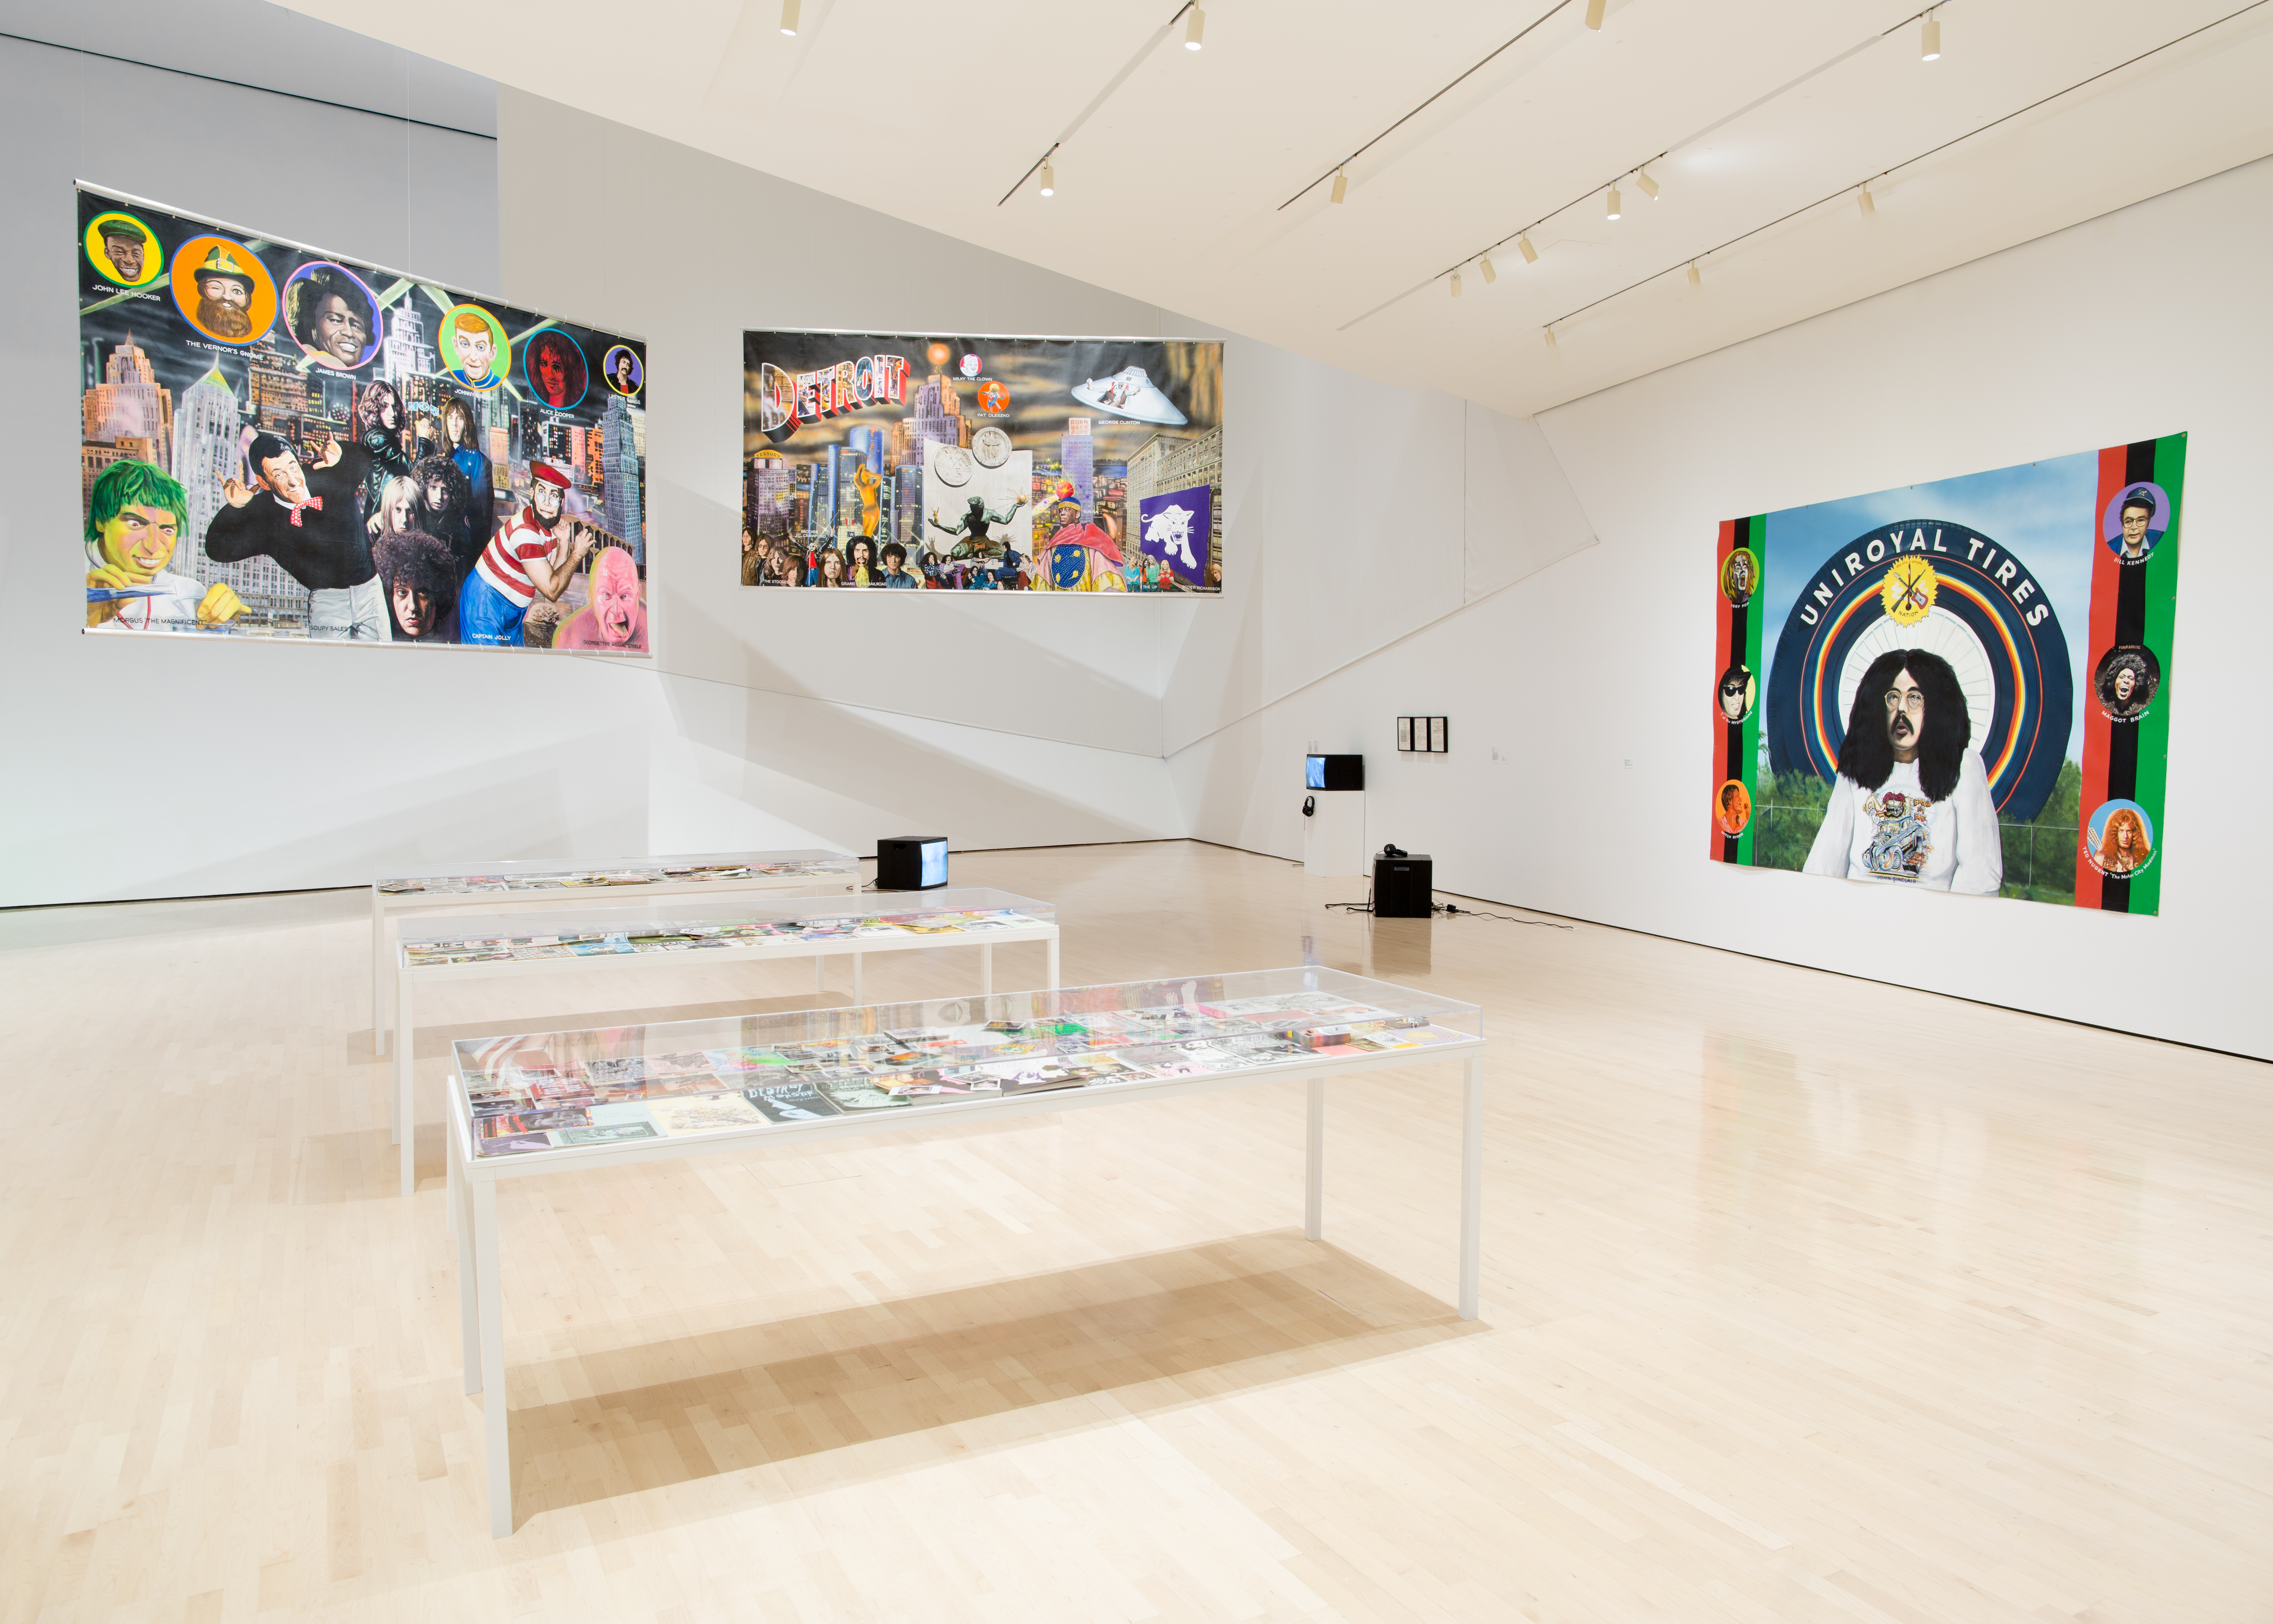 Michigan Stories: Mike Kelley and Jim Shaw, installation view at the MSU Broad, 2017. Photo: Eat Pomegranate Photography